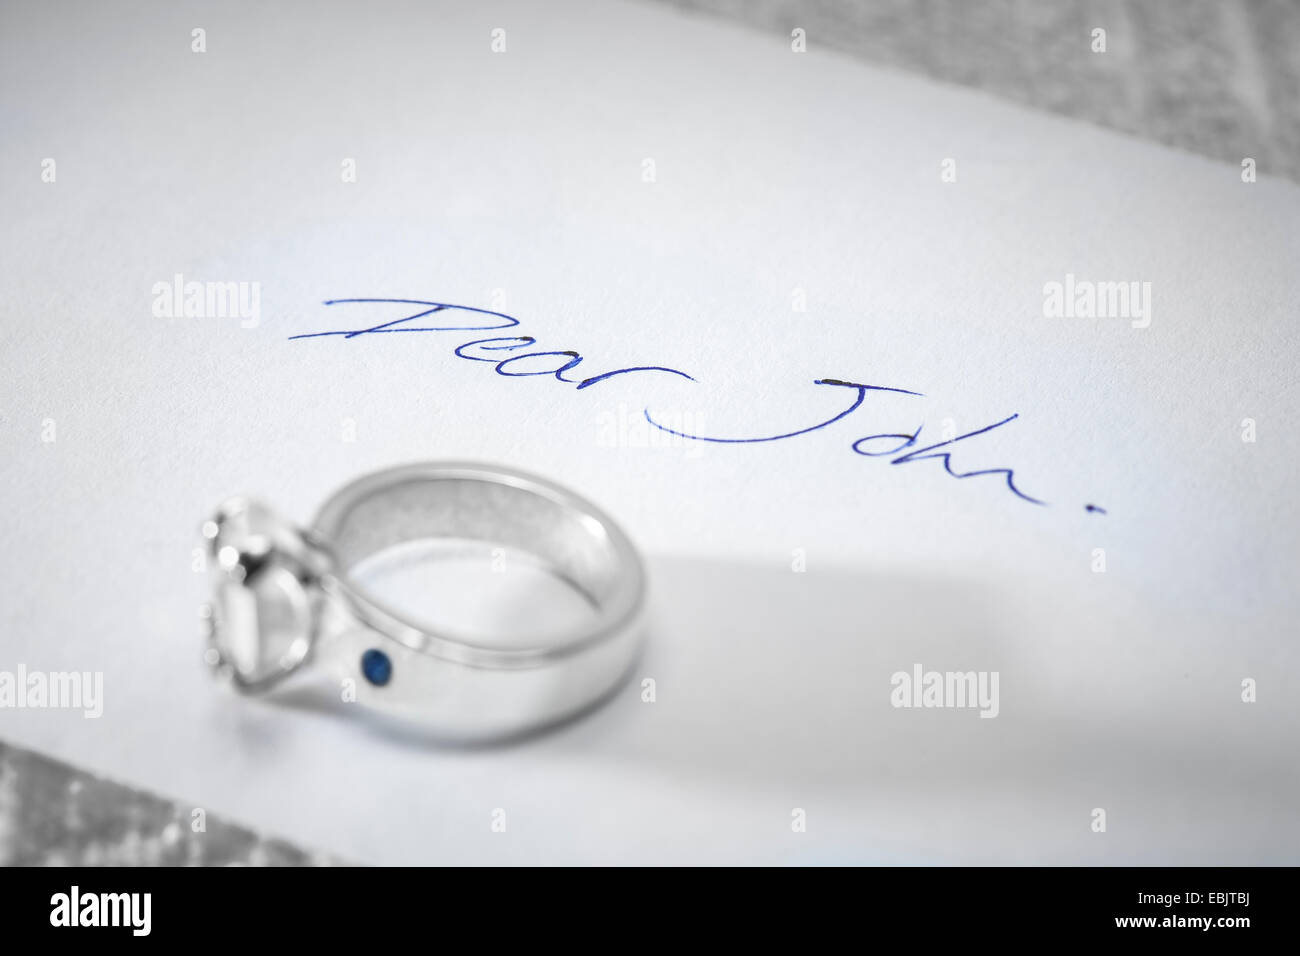 Returned engagement ring on a Dear John letter. - Stock Image